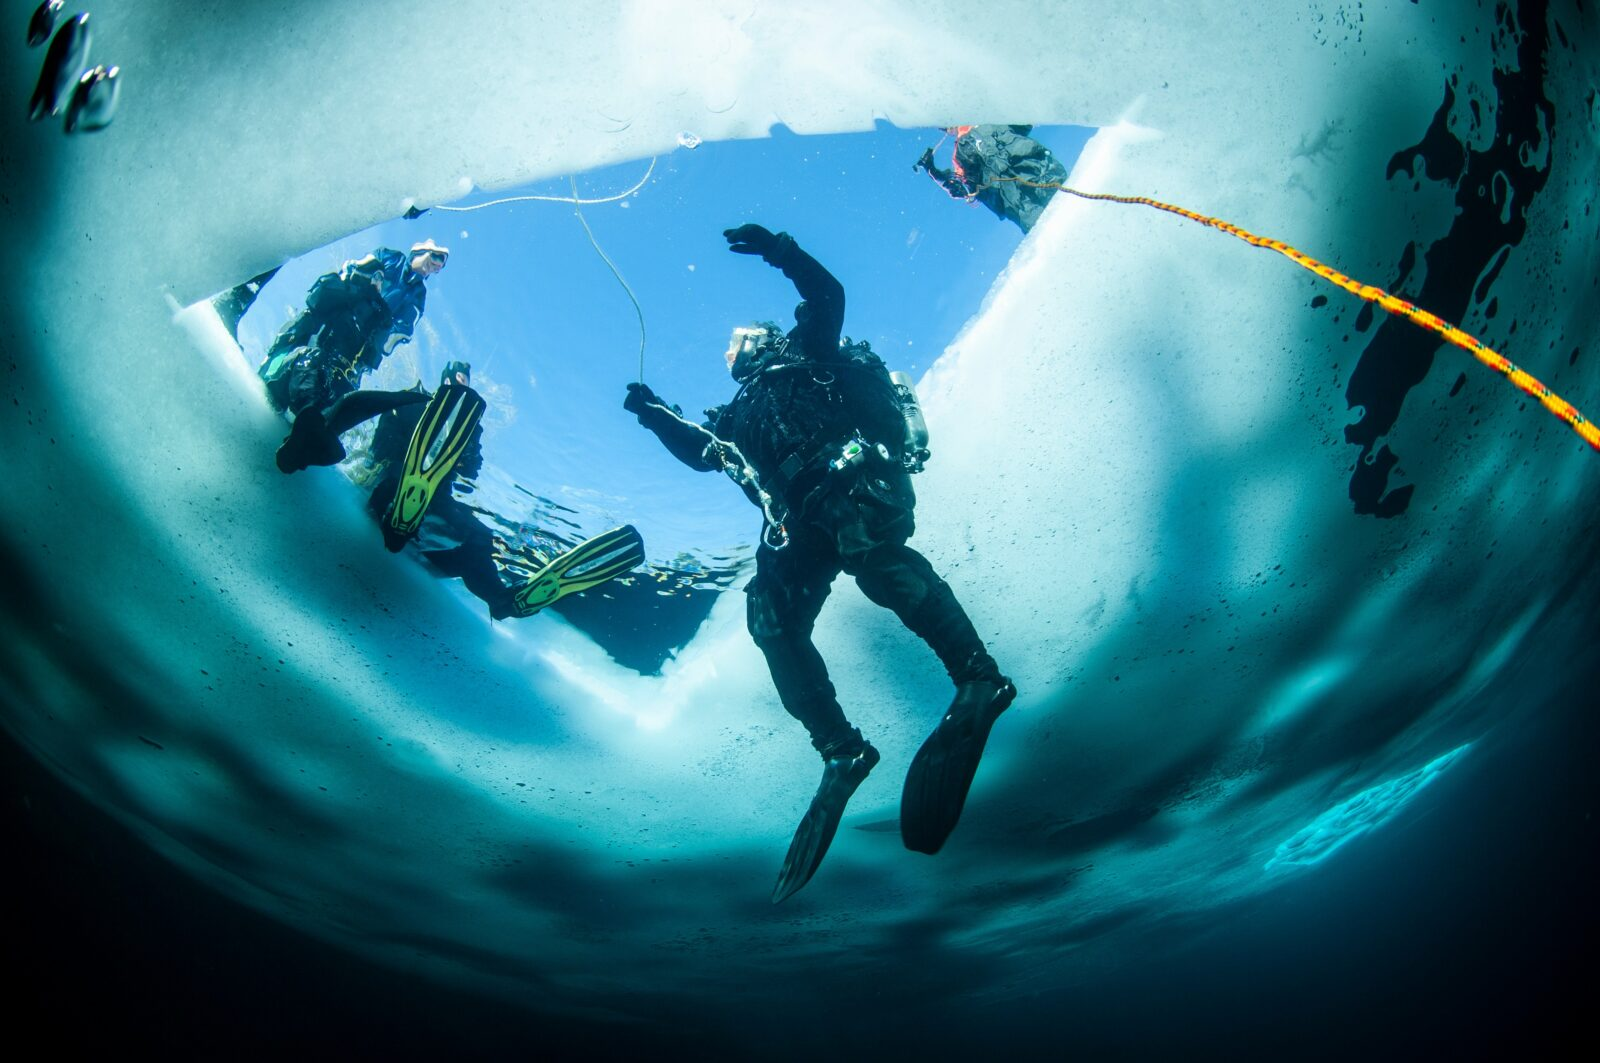 Diving under an ice lake, speed riding, snowkiting... Discover the best spots for a sensational holiday in every respect!